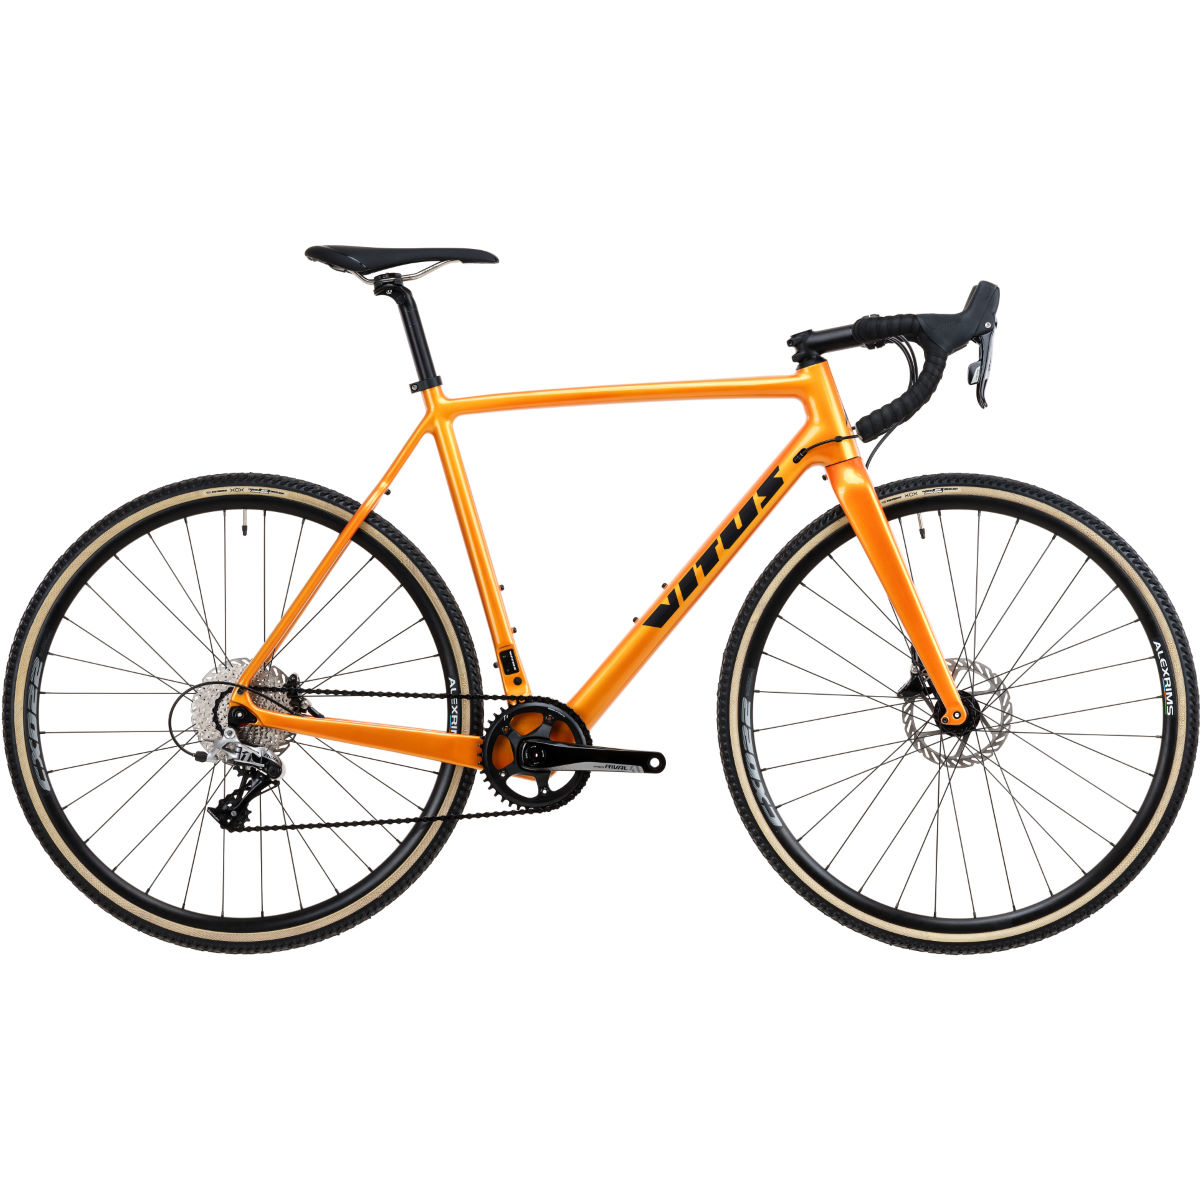 Image of Vélo de cyclo-cross Vitus Energie CR (Rival, 2020) - X-Small